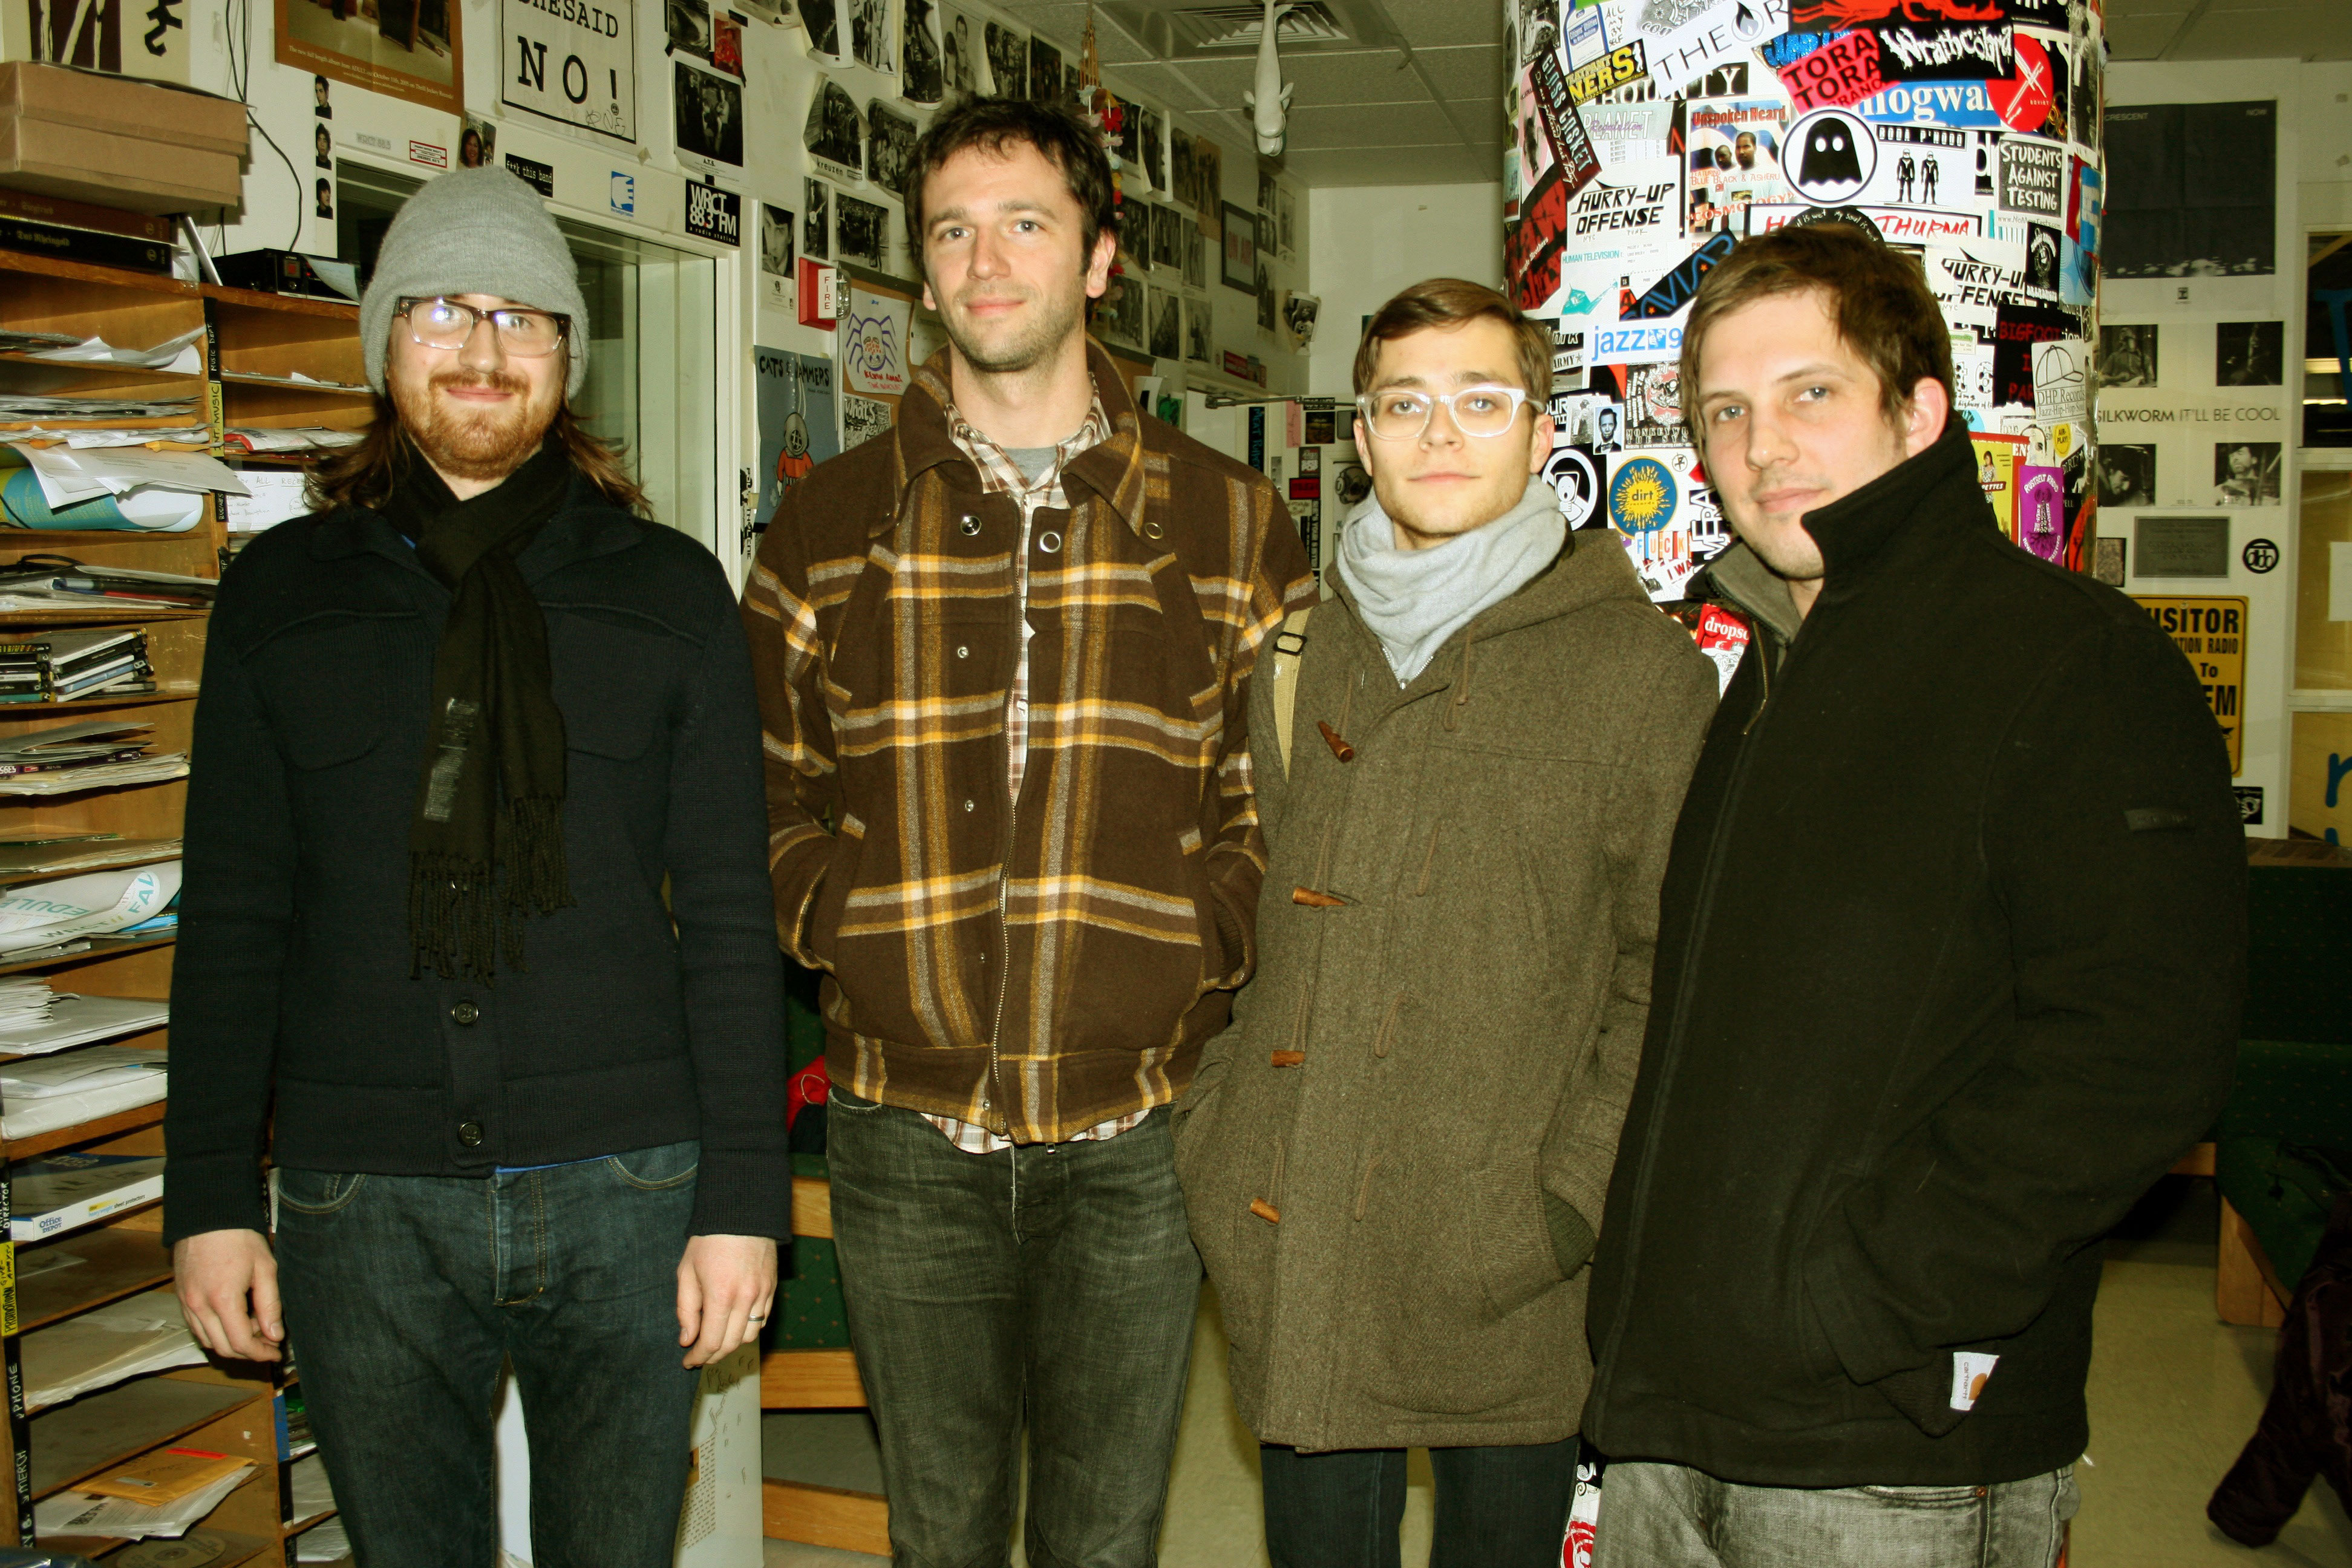 Tapes 'n Tapes members (from left) Josh Grier, Erik Appelwick, Jeremy Hanson, and Matt Kretzman pose in the WRCT's studio. (credit: Courtesy of M. Callen)